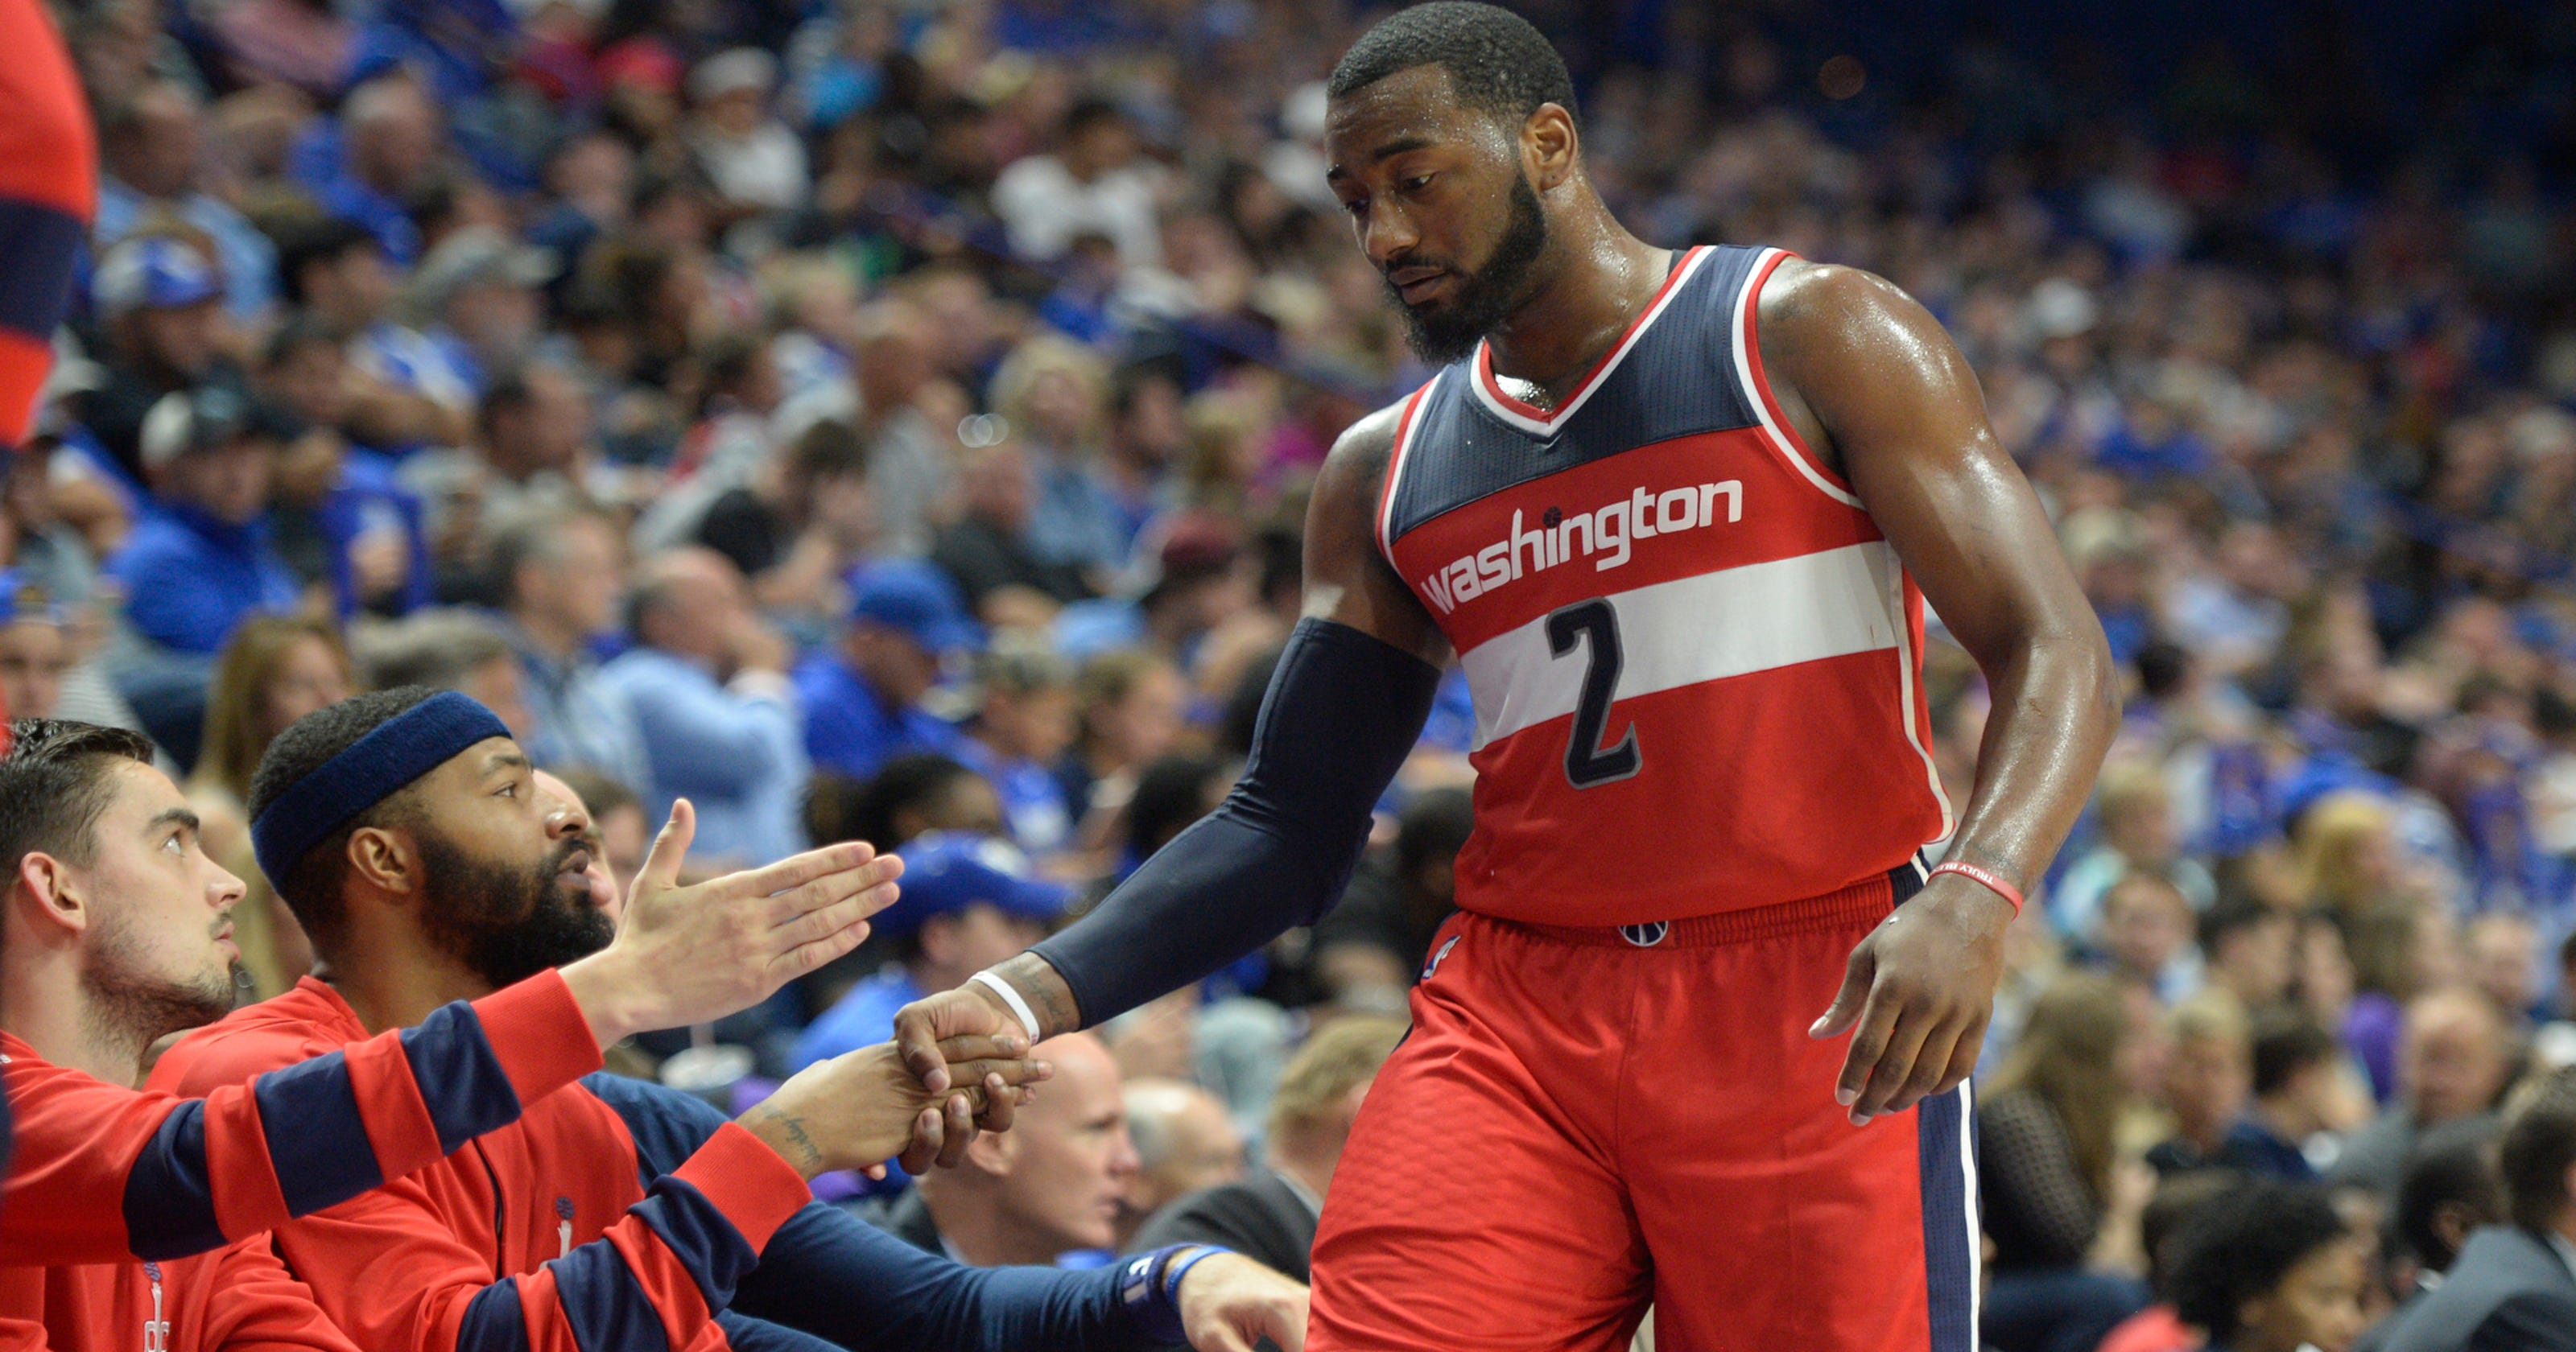 detailed look 9ec32 45e91 Time for giving: Former UK star John Wall gives teammates ...